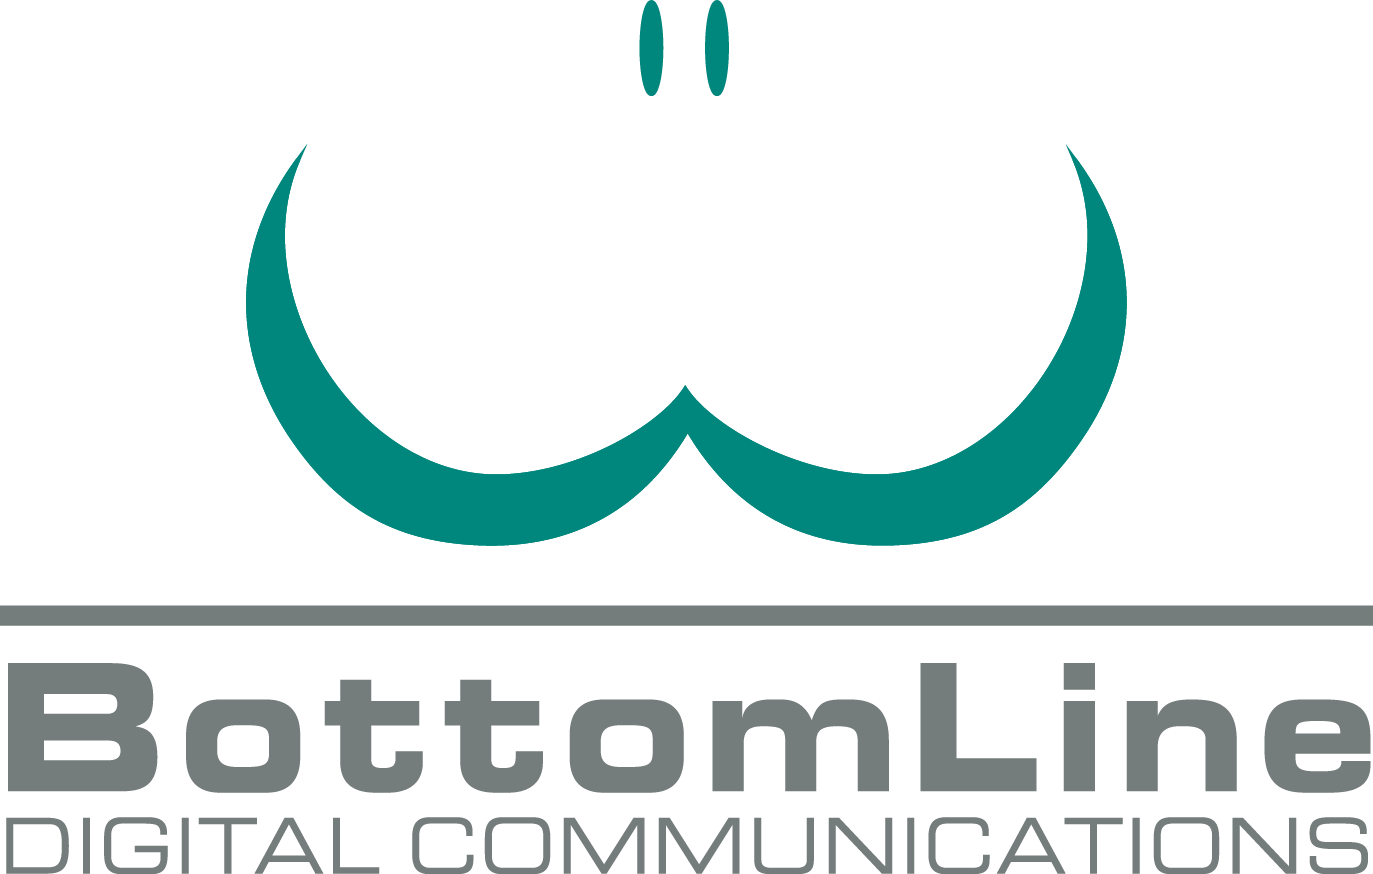 BottomLine Digital Communications